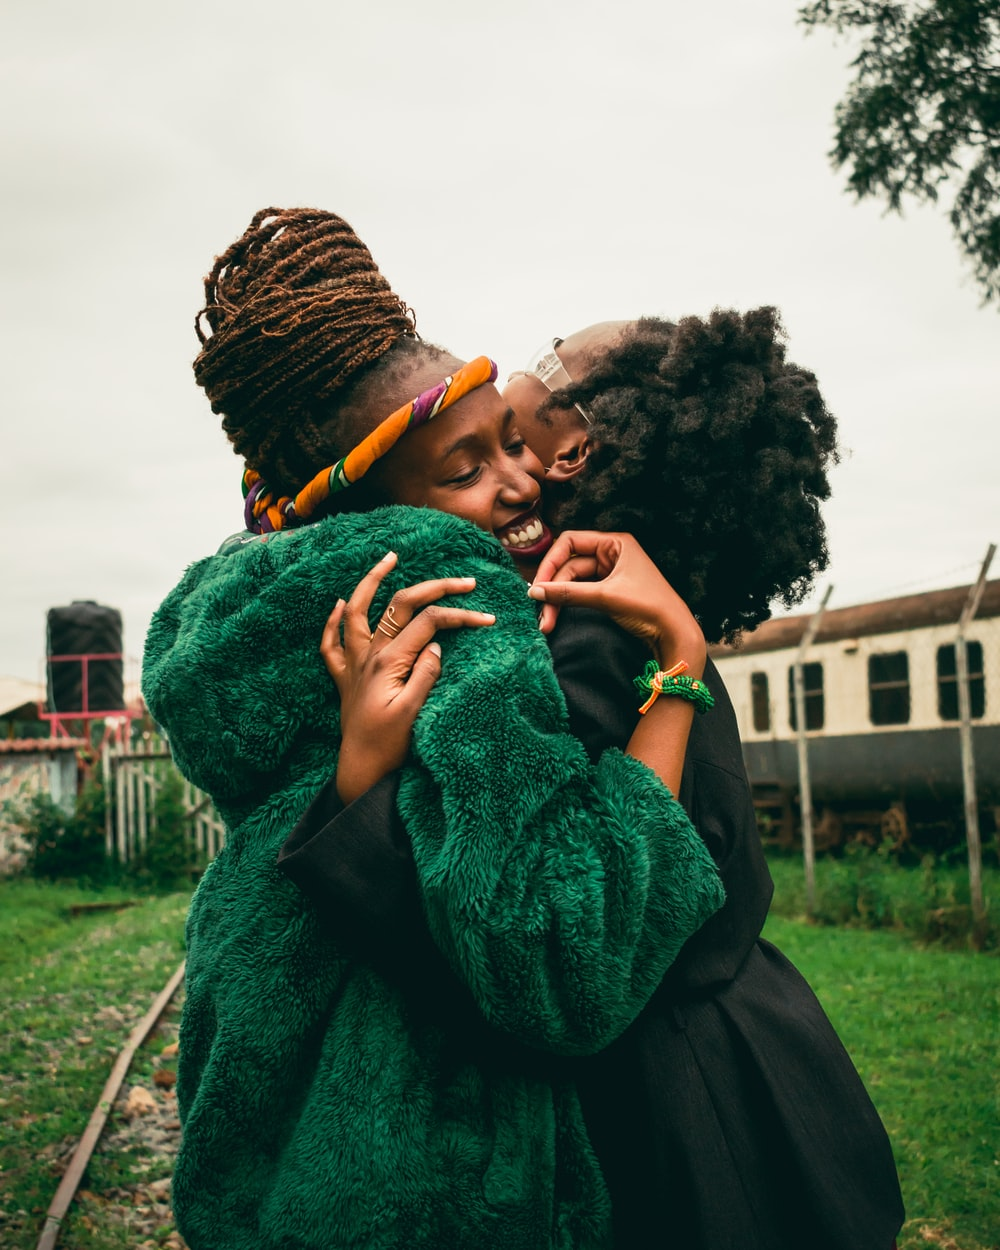 two women hugging during day time